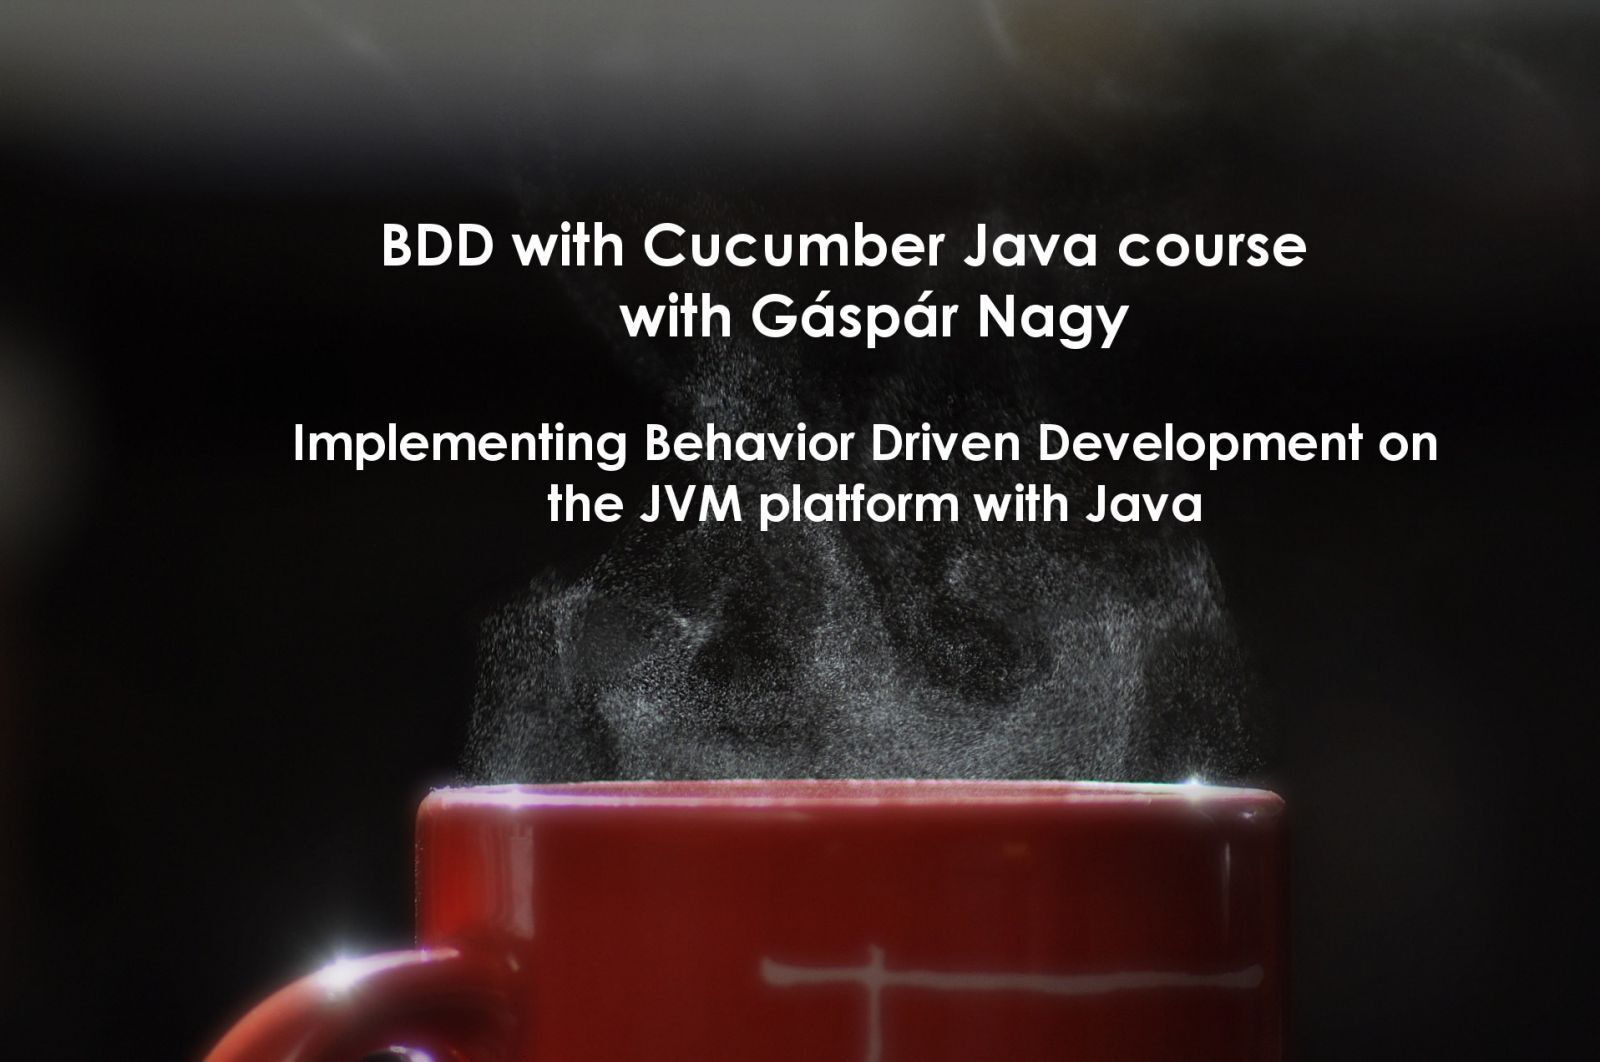 BDD with Cucumber Java Course